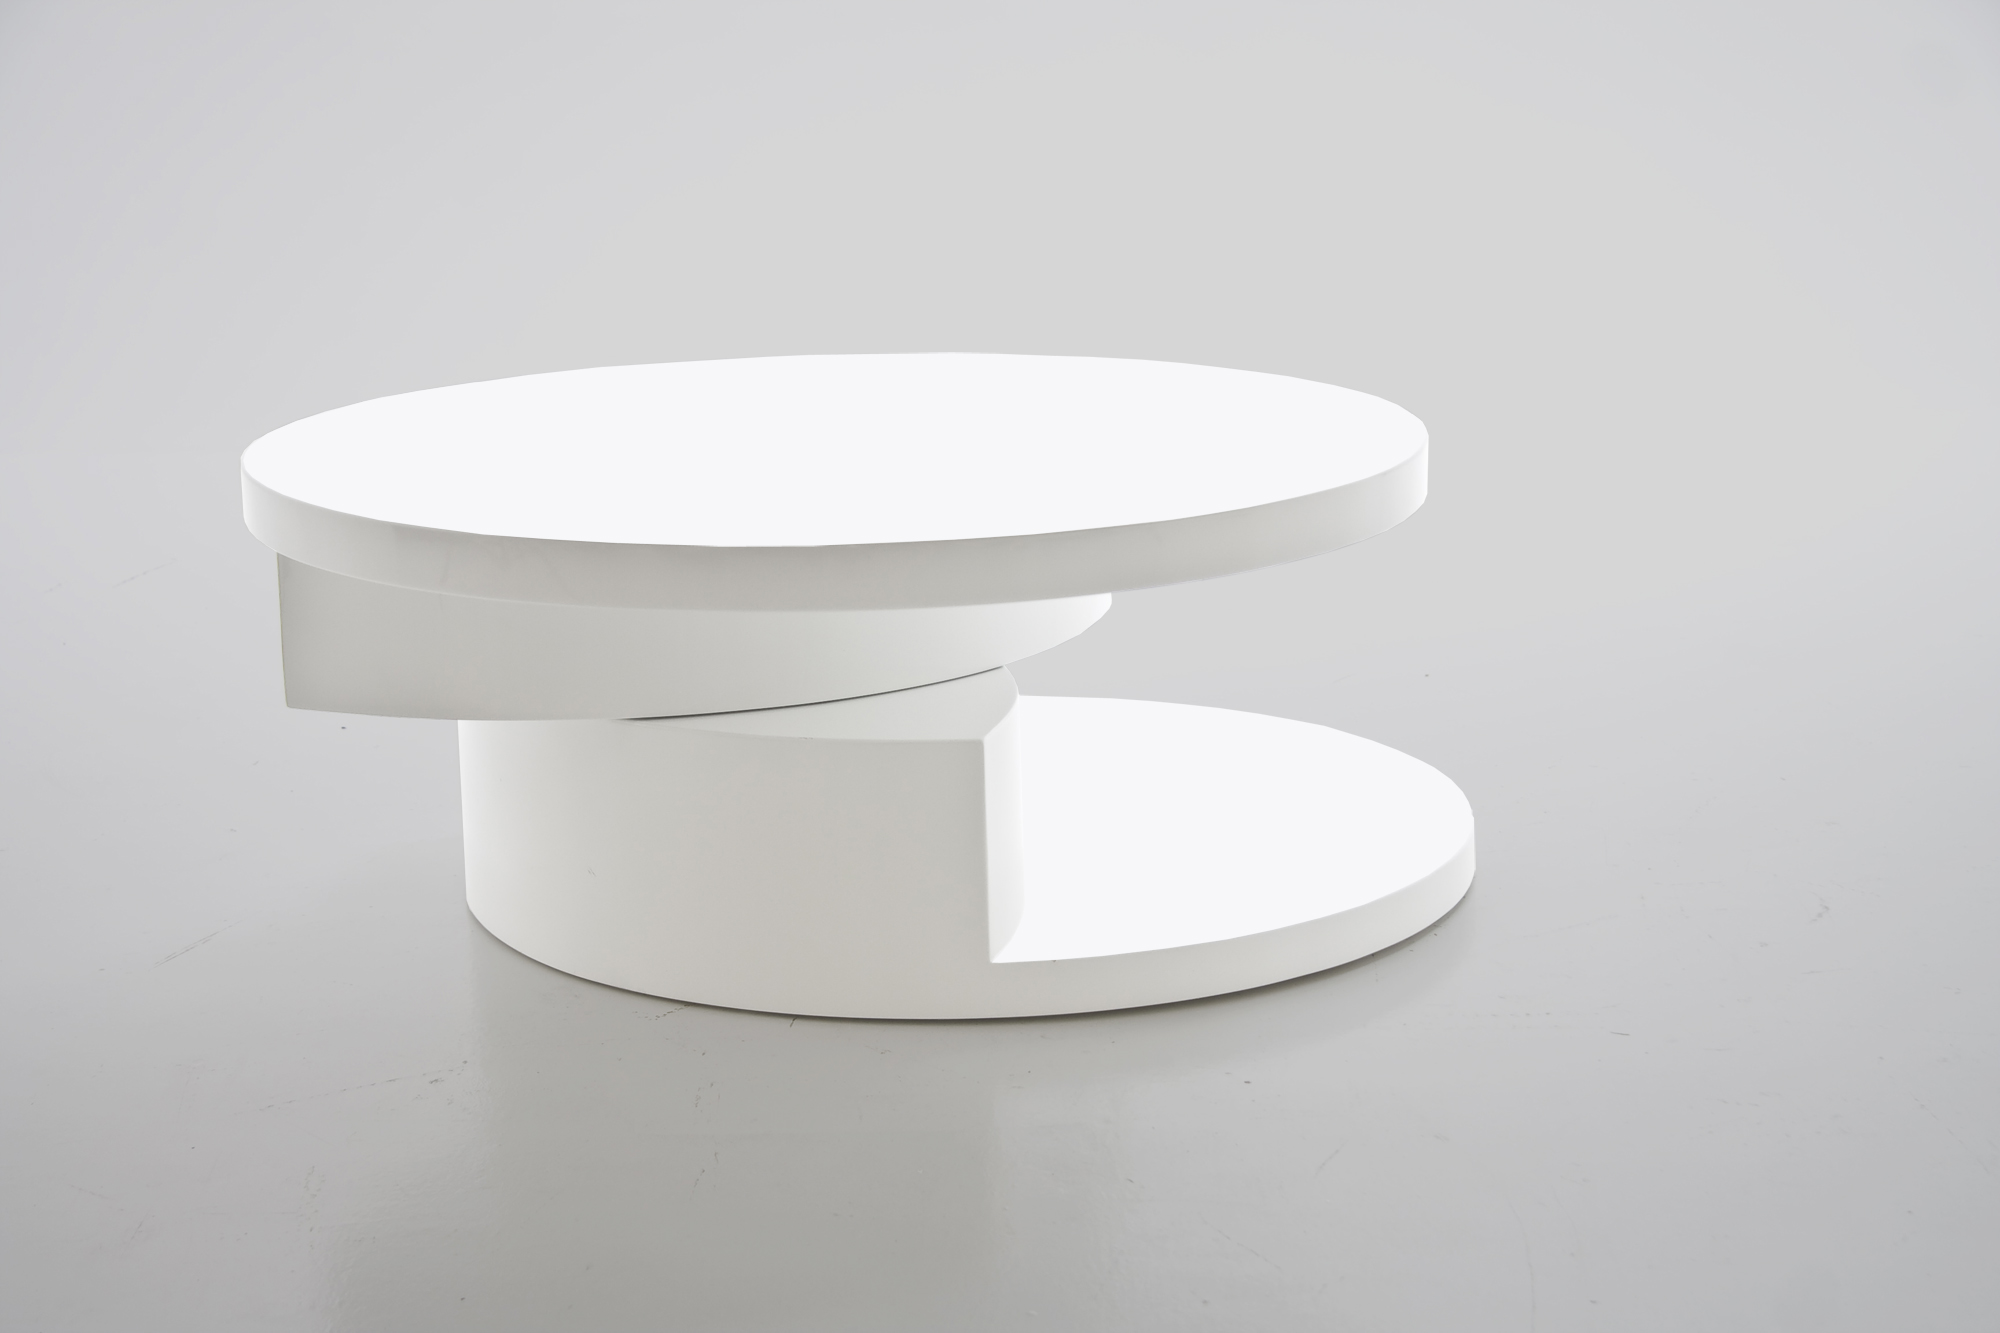 collection of modern white round coffee tables - small coffee table white some round coffee tables can have an unusual formand shape unique